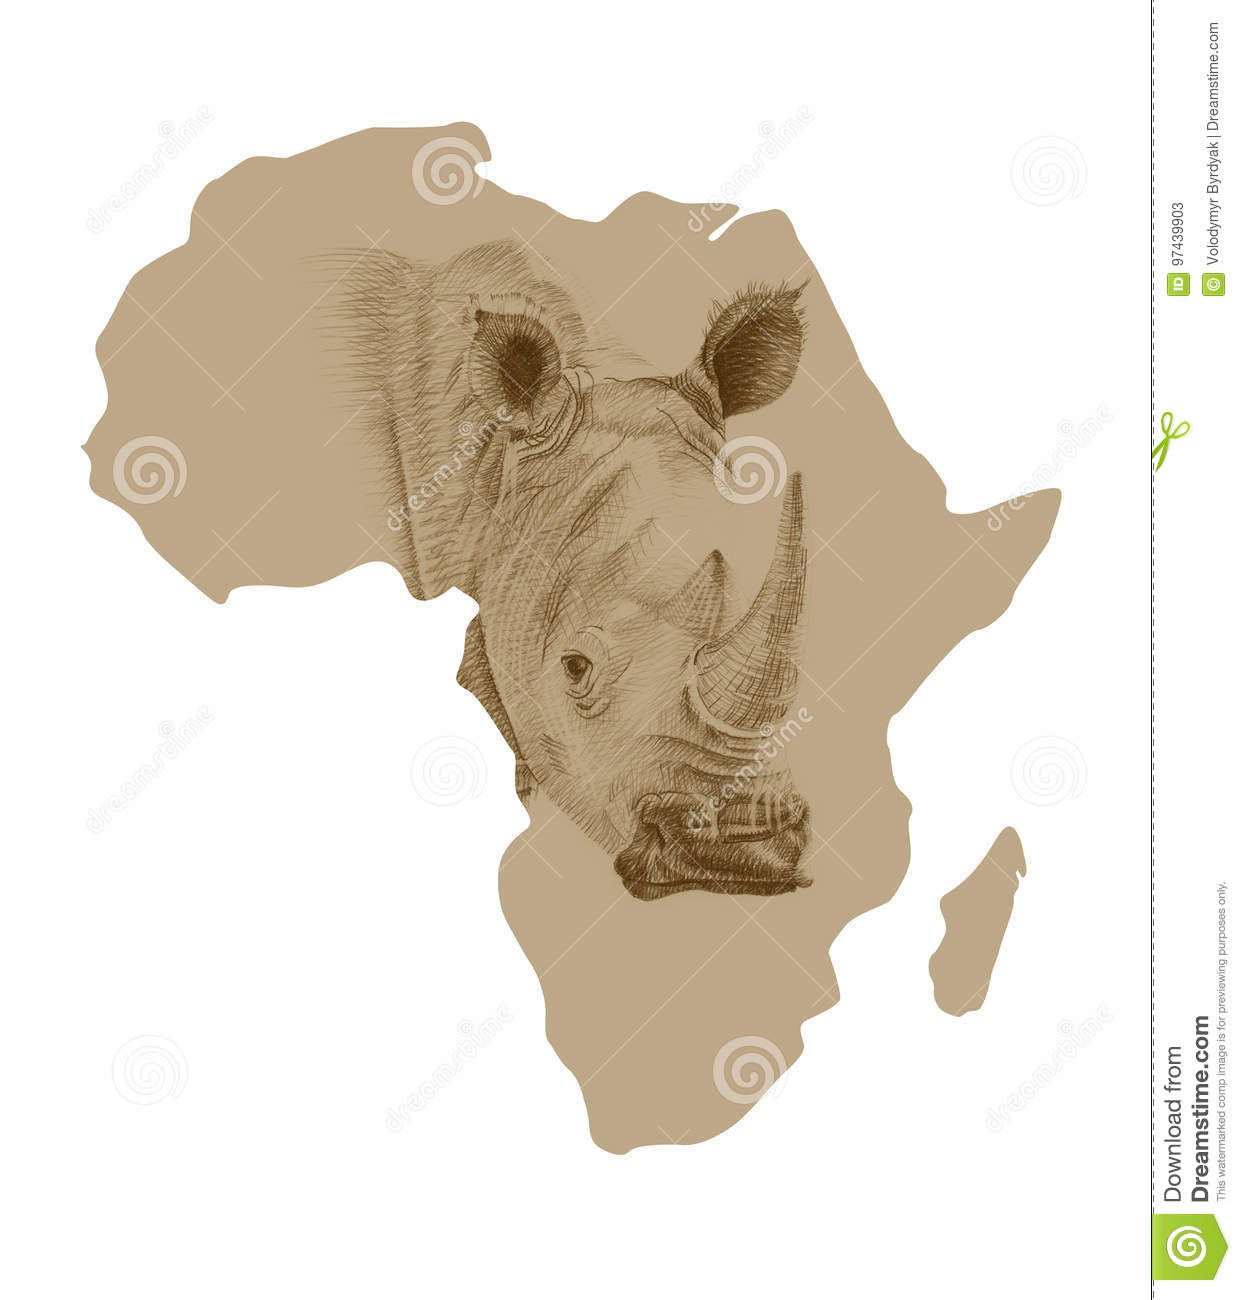 Map Of Africa Drawing.Map Of Africa With Drawn Rhino Stock Illustration Illustration Of